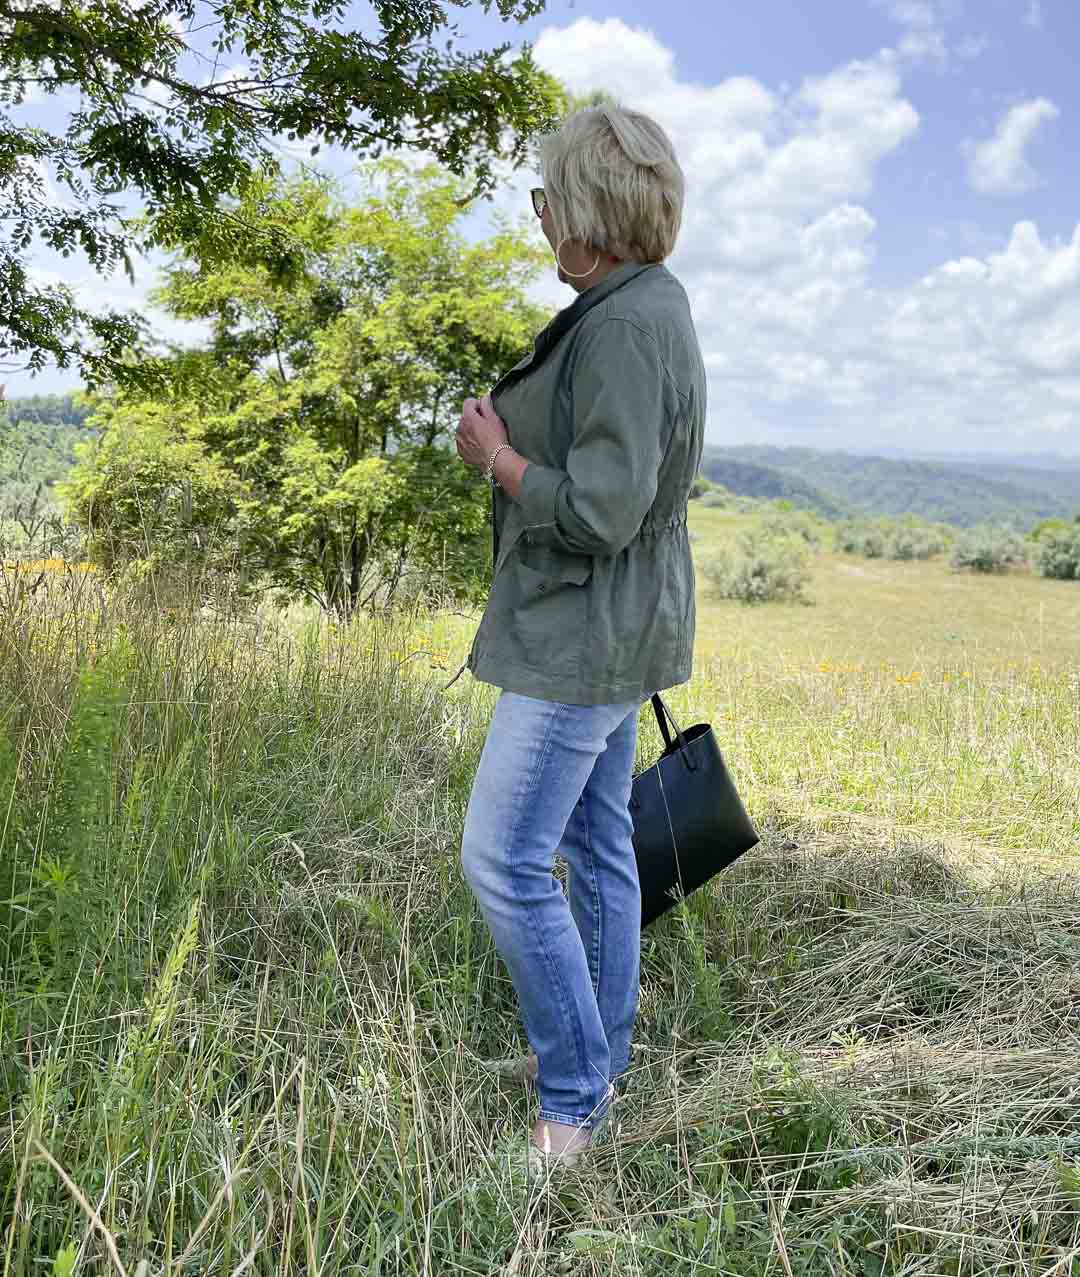 Fashion Blogger 50 Is Not Old is standing in a field wearing an olive jacket with jeans and a black tote